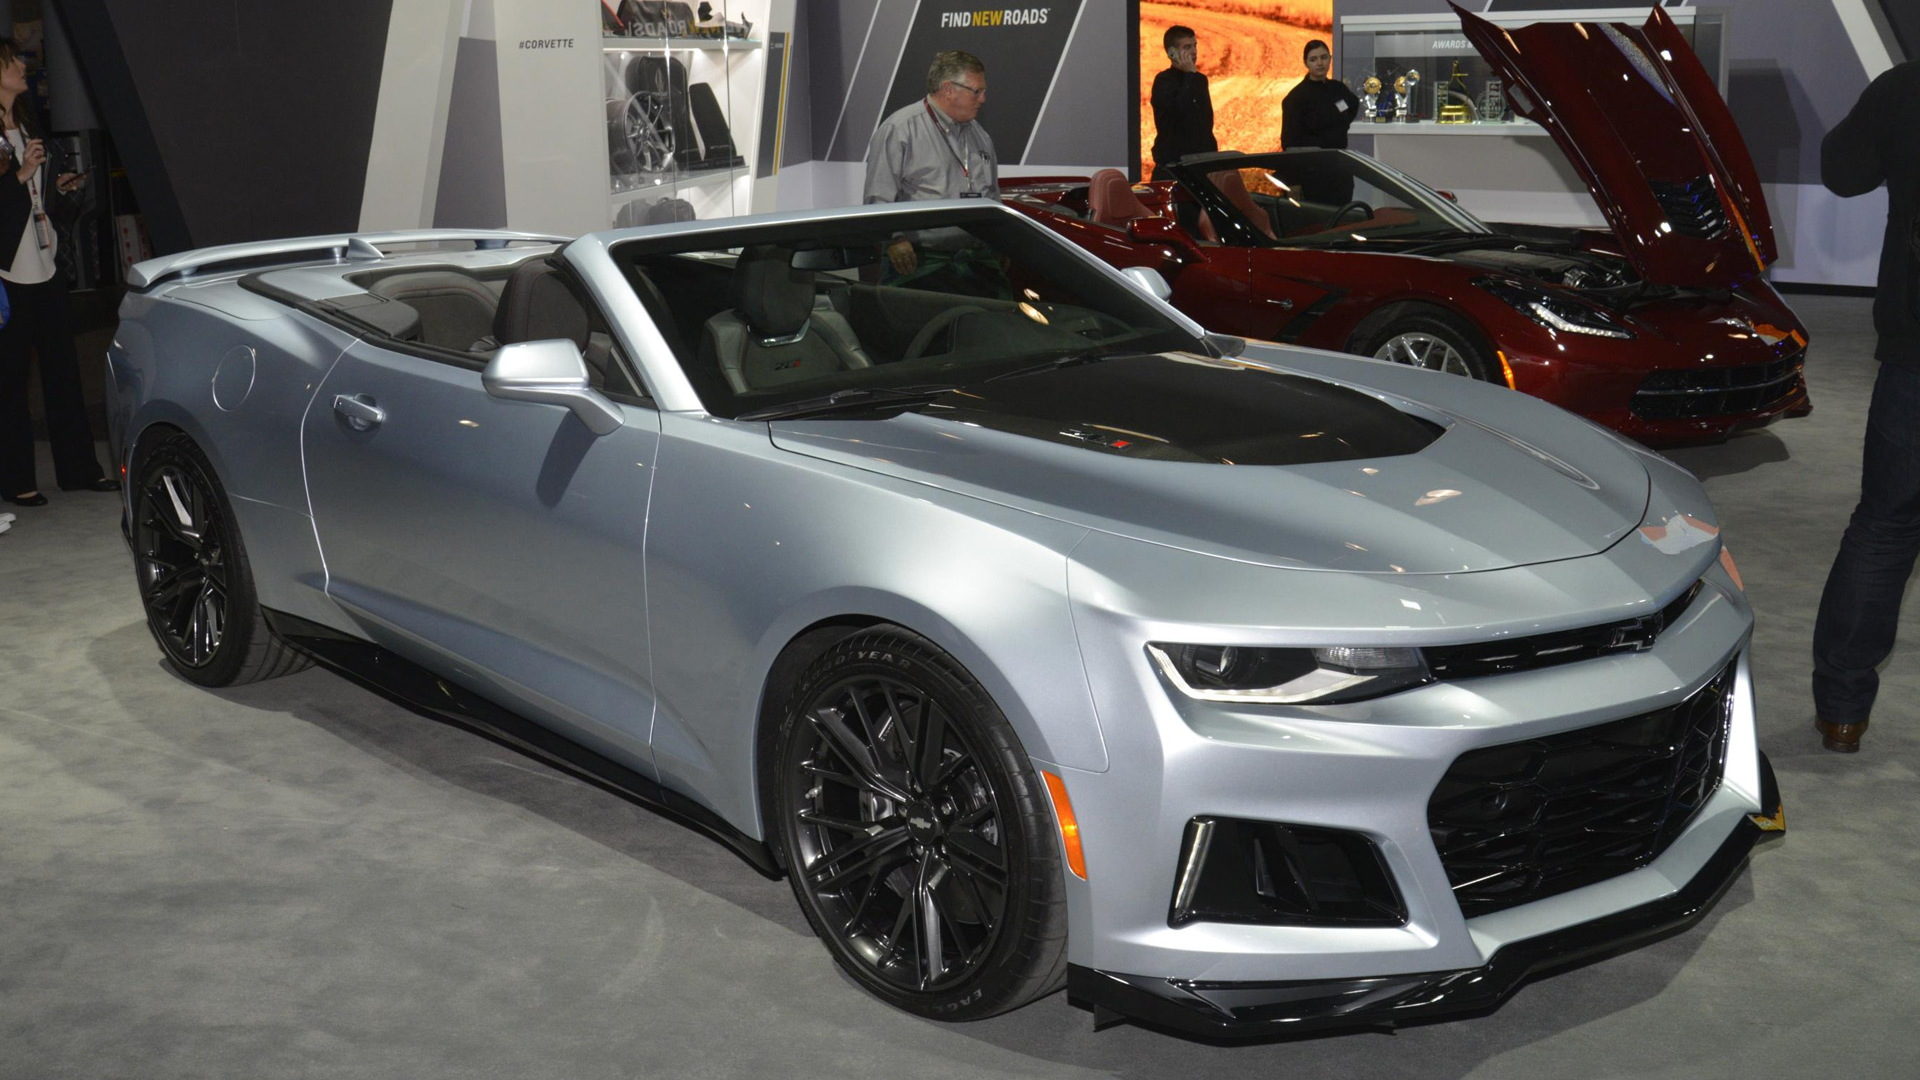 2017 Chevrolet Camaro Zl1 Convertible 2016 New York Auto Show